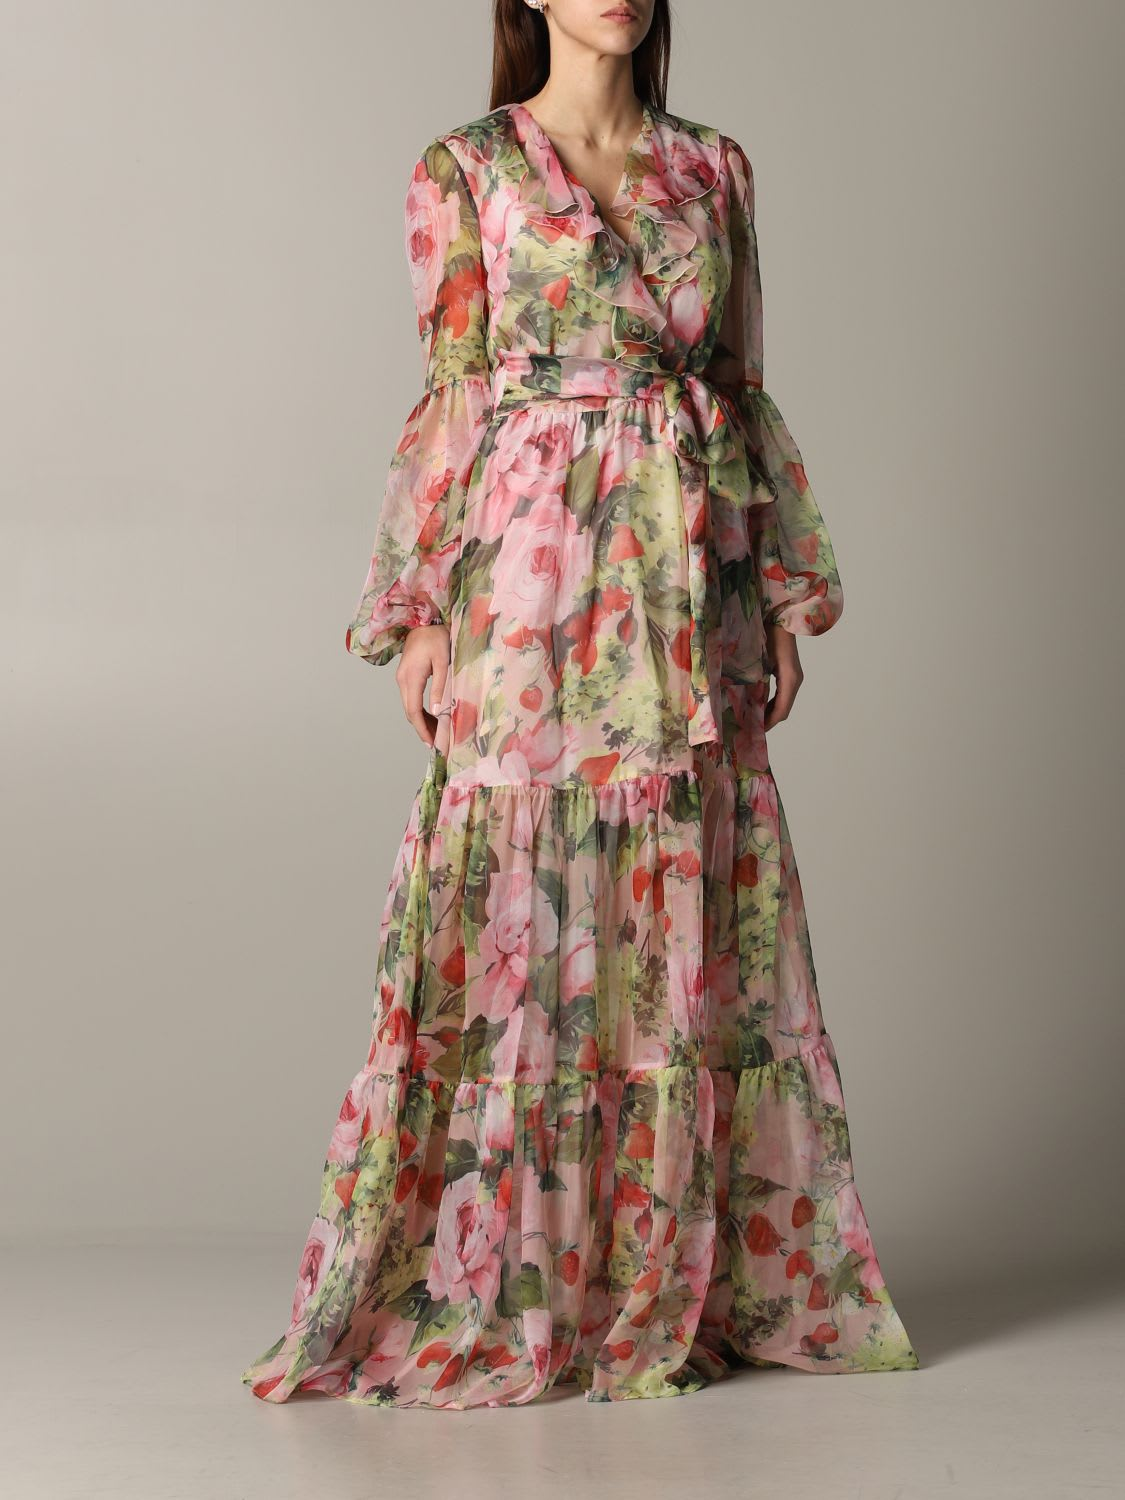 Buy Blumarine Dress Long Blumarine Dress In Floral Patterned Chiffon online, shop Blumarine with free shipping